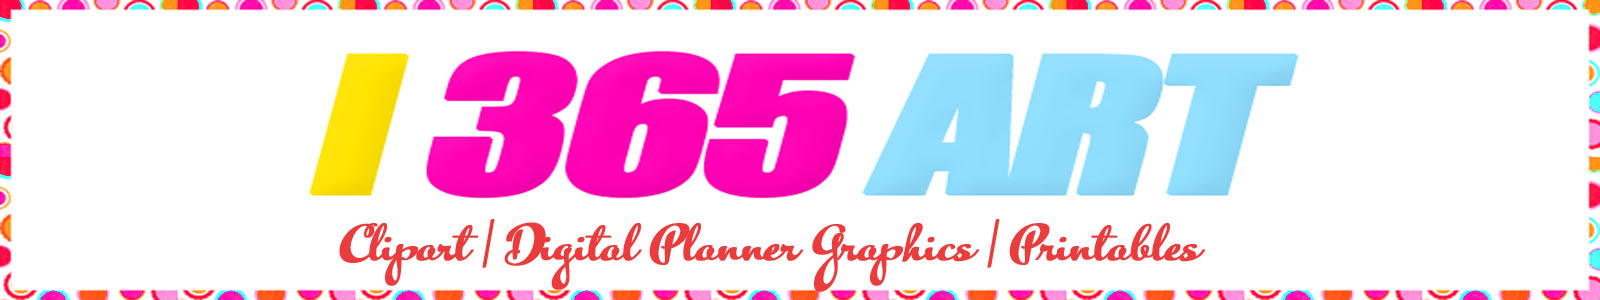 Clipart, Digital Planner Graphics and Printables